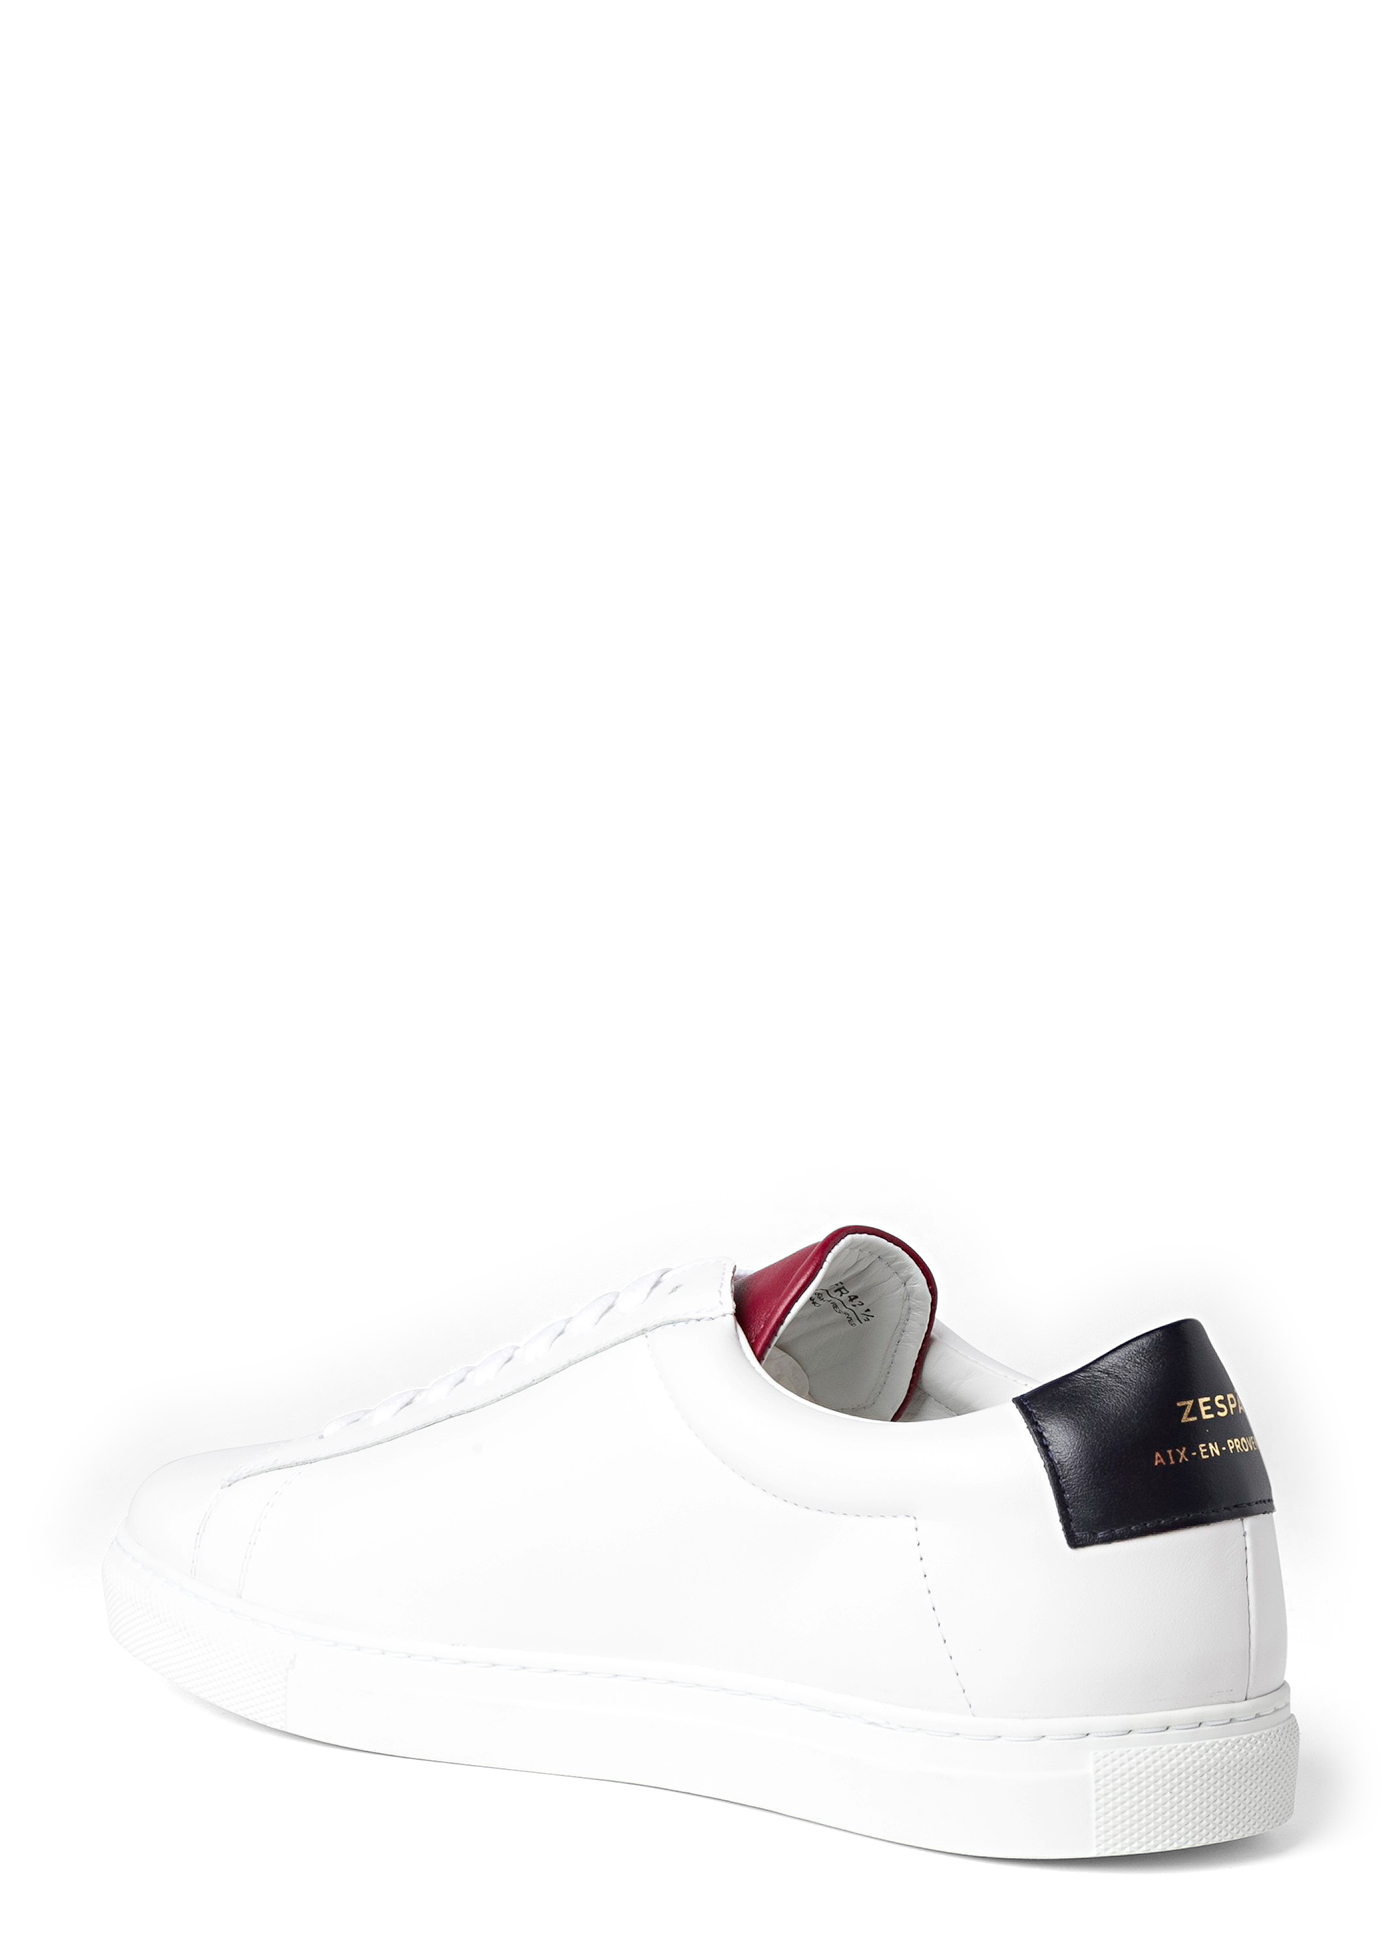 ZSP4 APLA NAPPA WHITE / image number 2